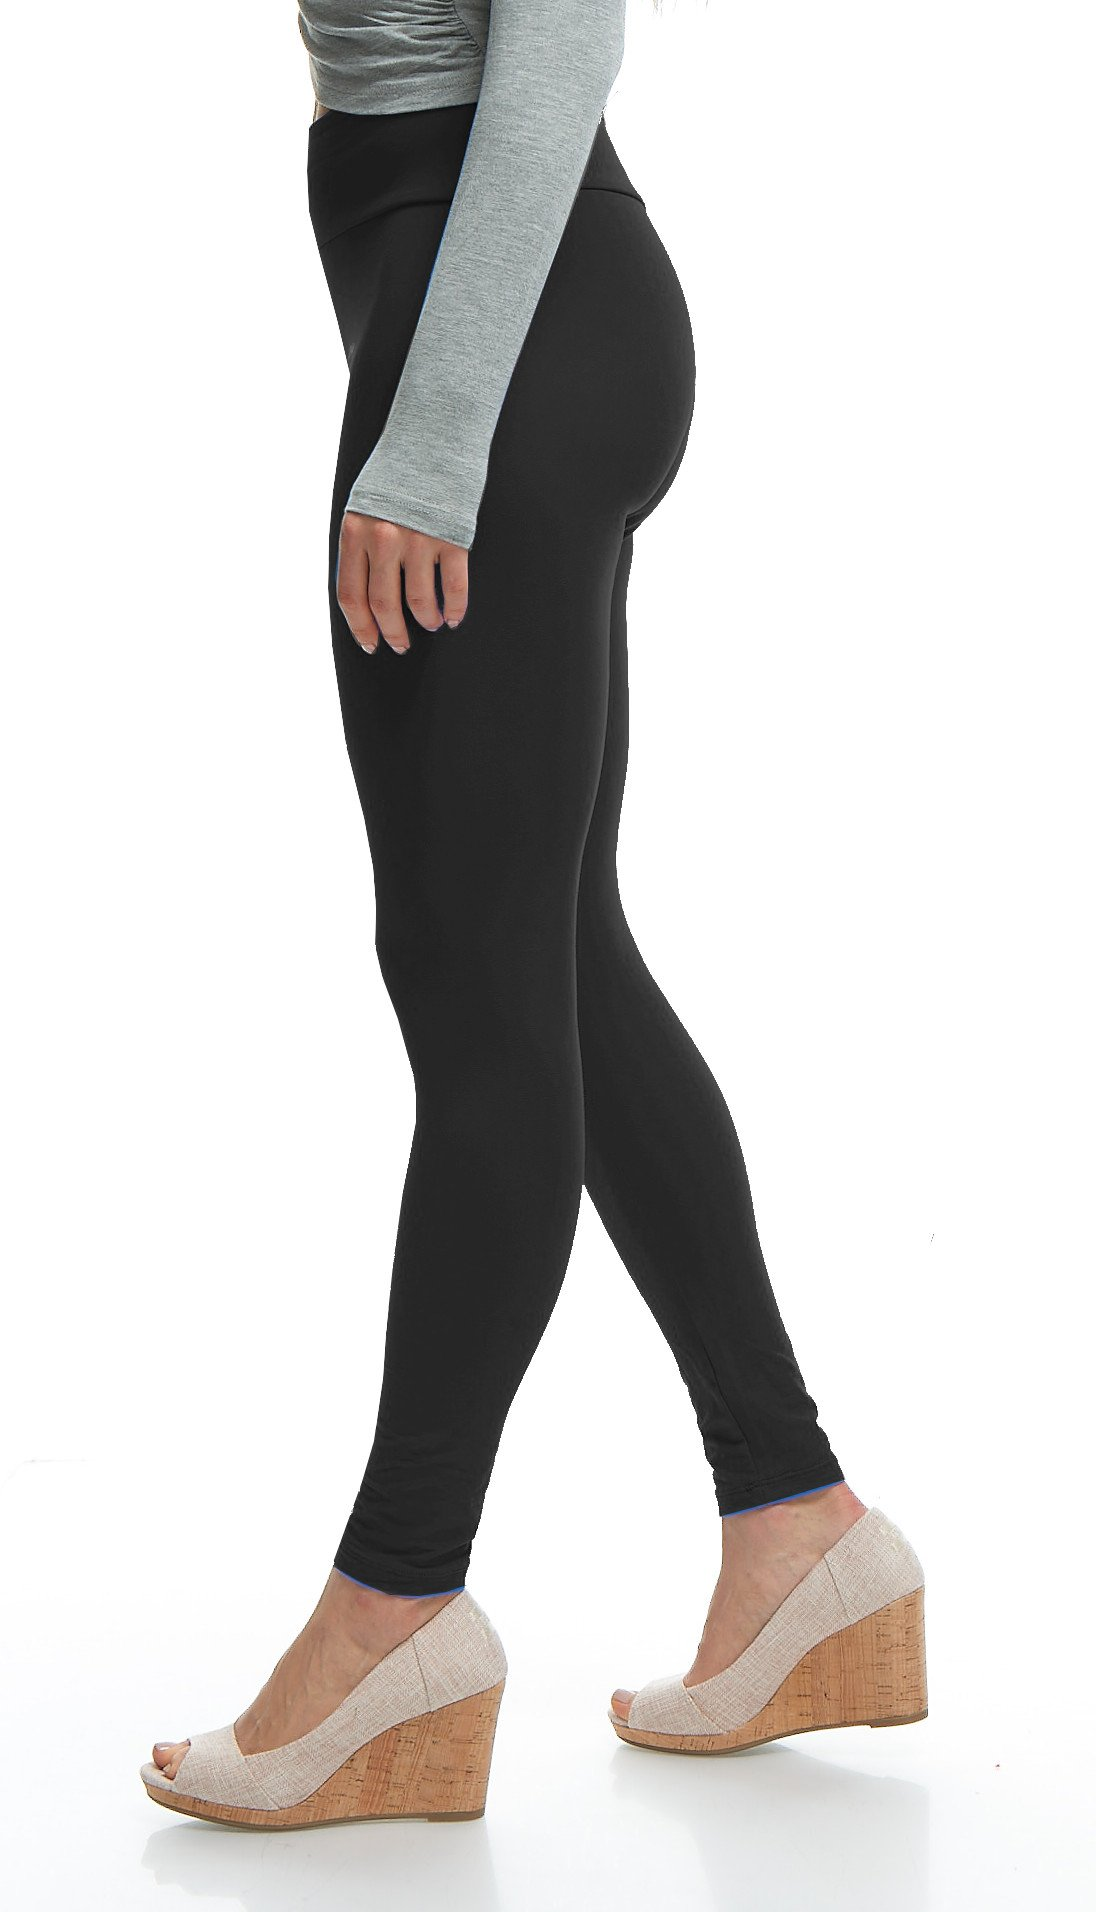 LMB Yoga Leggings Buttery Soft Material - Variety of Colors - Black by LMB (Image #4)